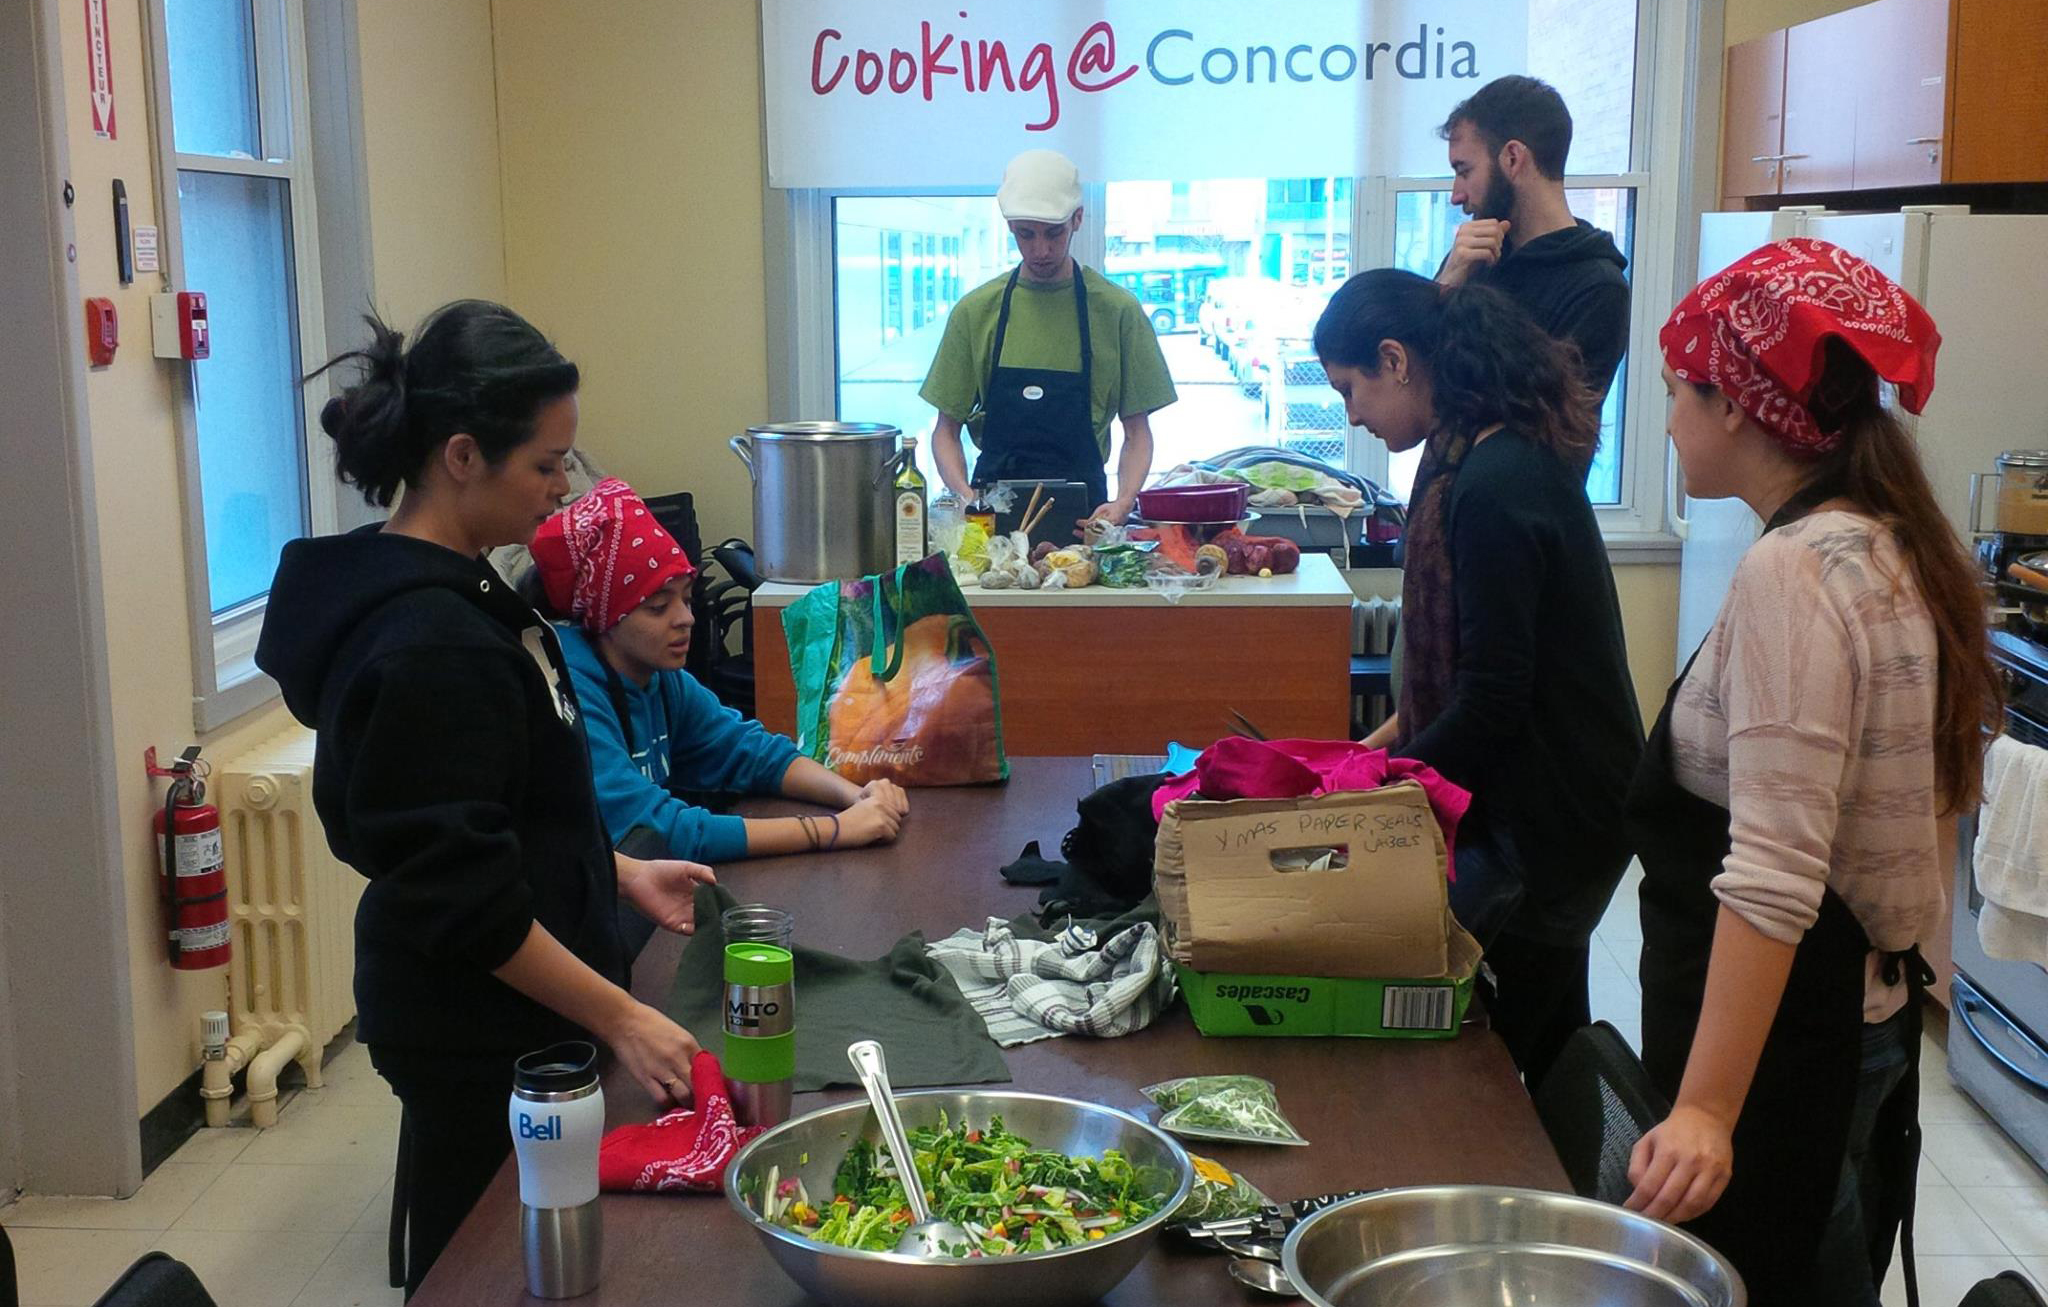 Photo: Cooking at Concordia